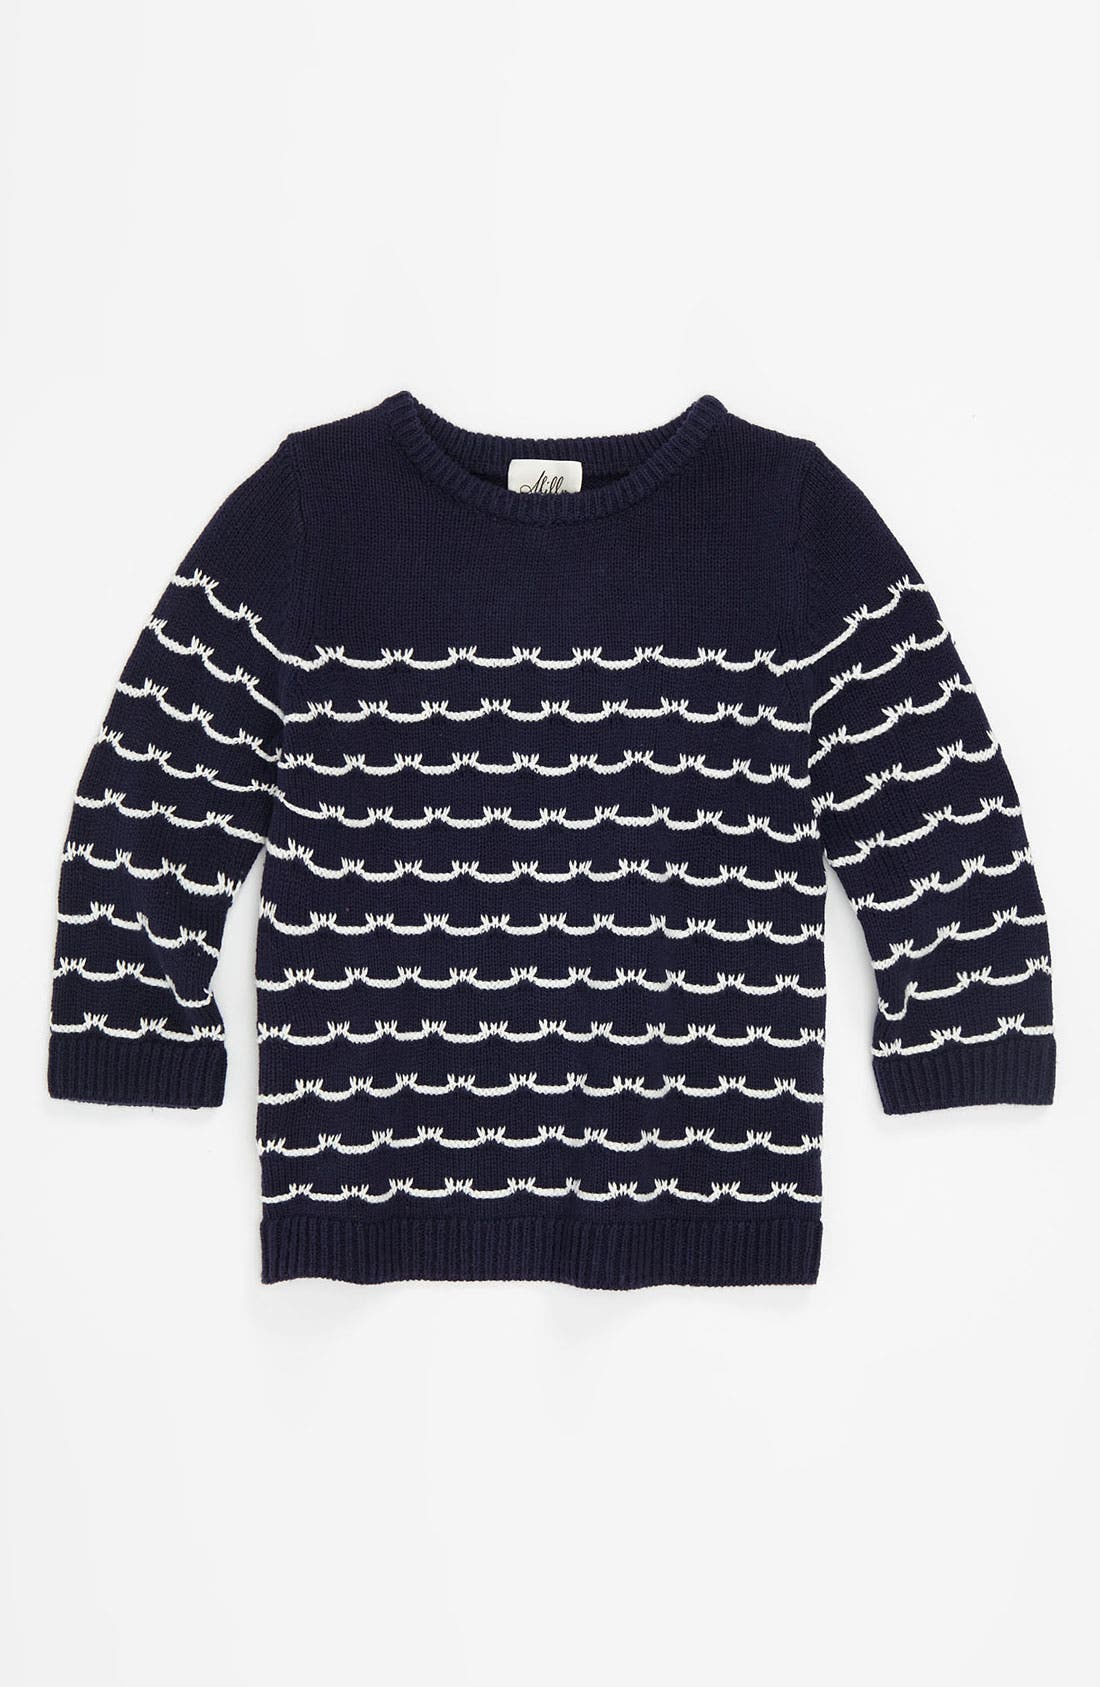 Main Image - Milly Minis 'Sailor Stitch' Sweater (Little Girls & Big Girls)